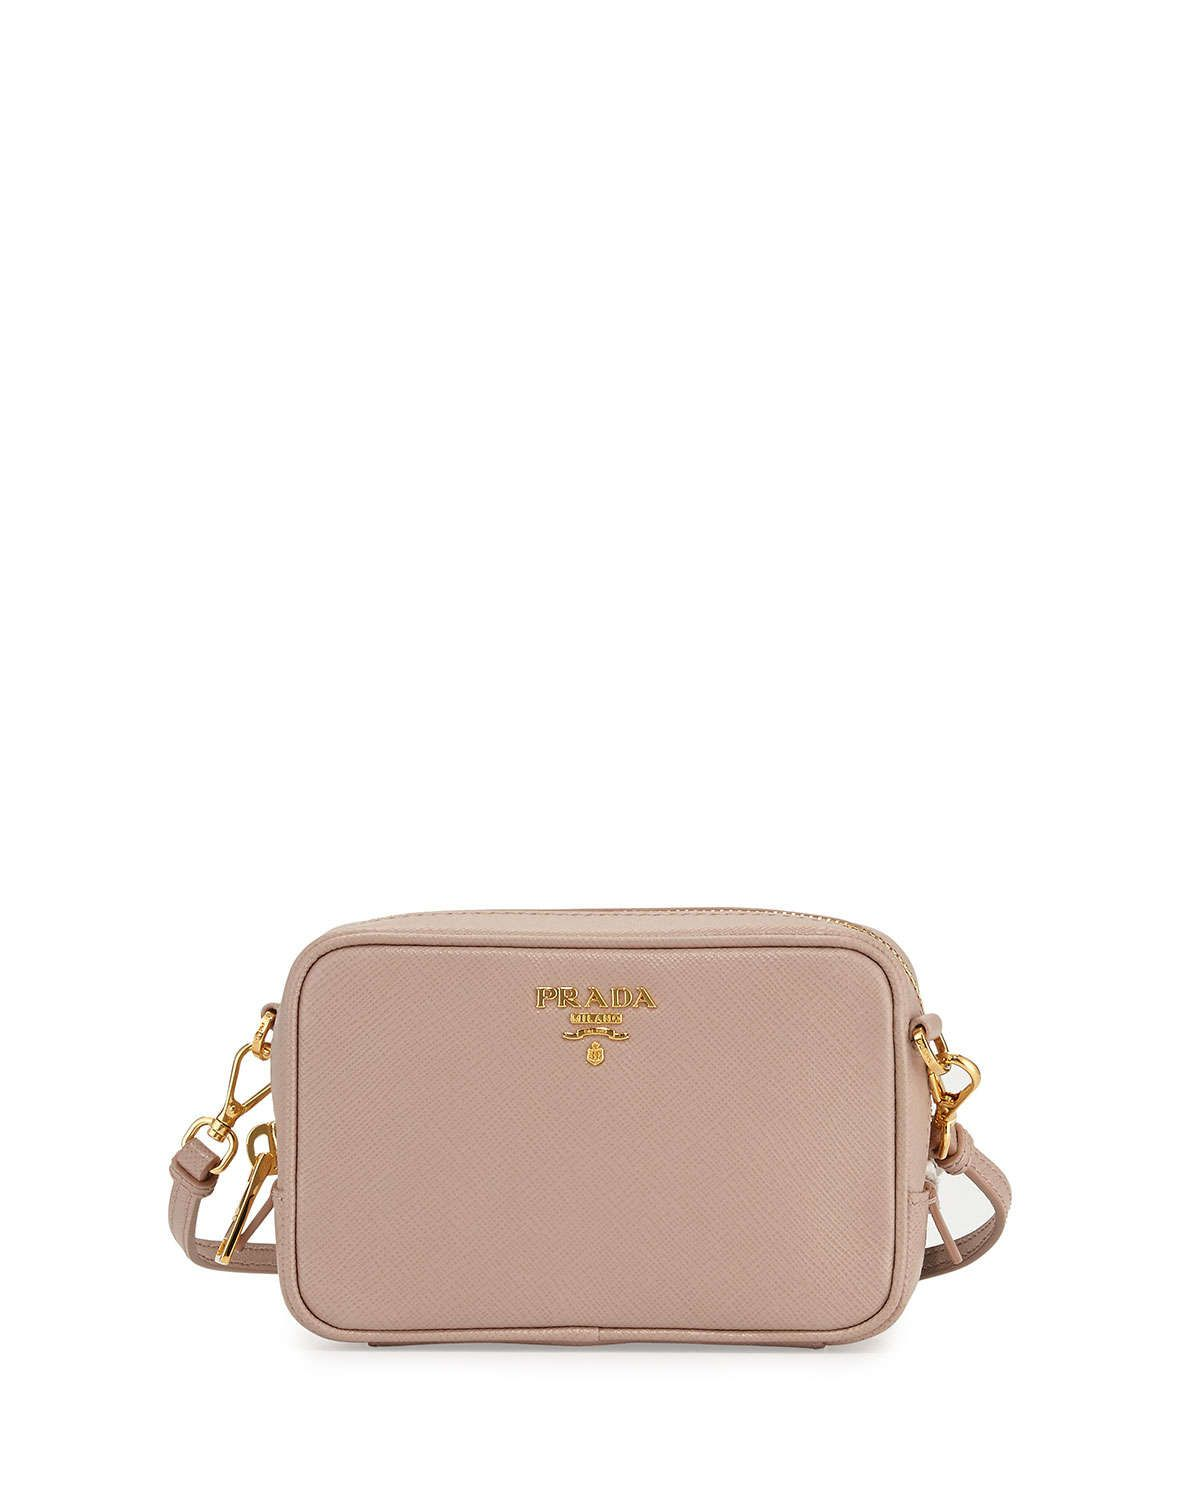 Prada Saffiano Camera Bag Blush